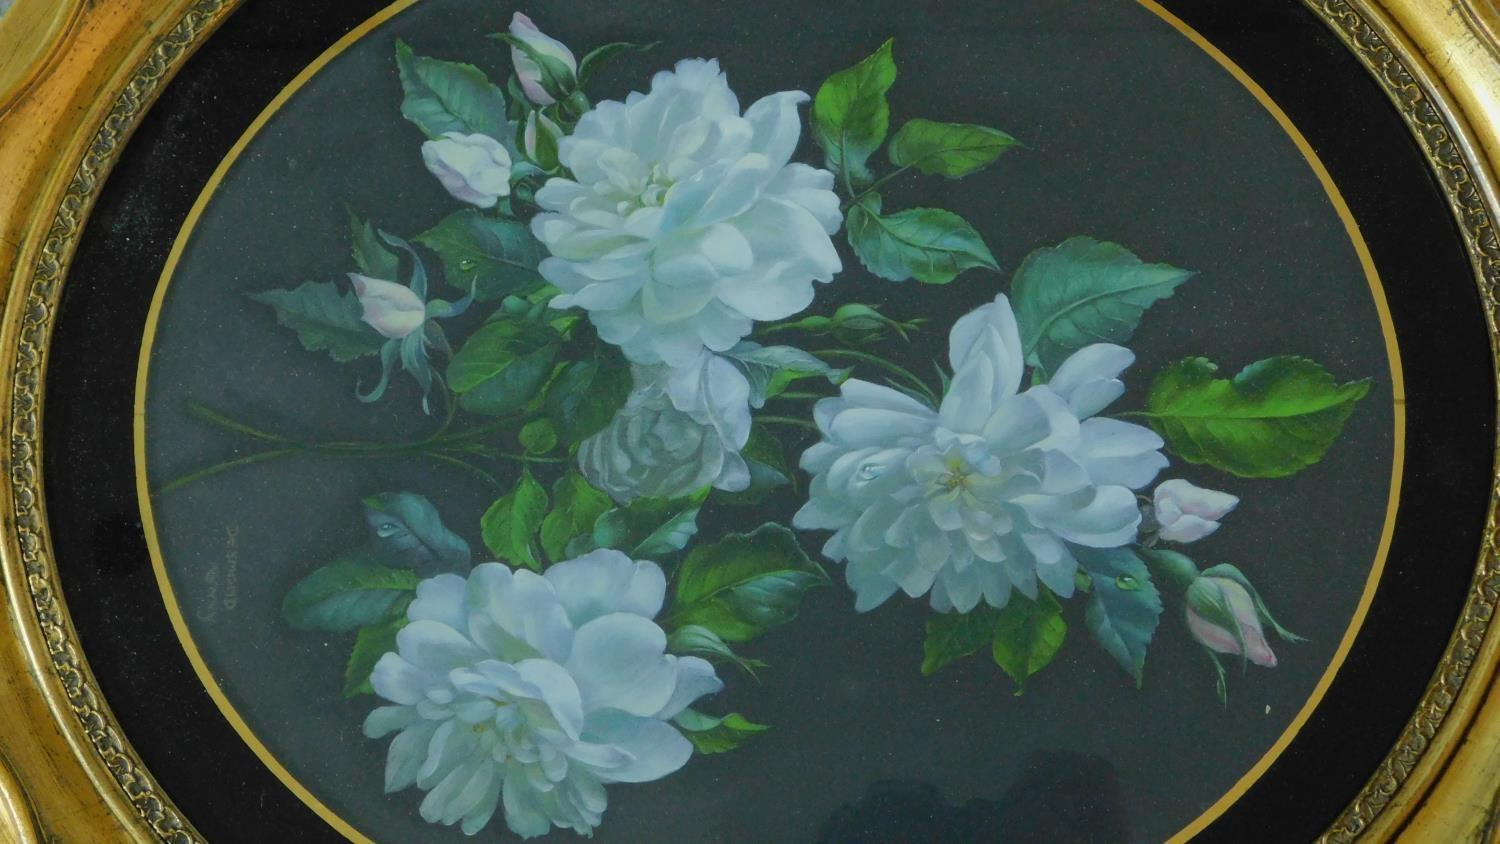 A gilt framed oval oil on board, flowers, an oil on canvas lake scene and and a pastel portrait of a - Image 6 of 9